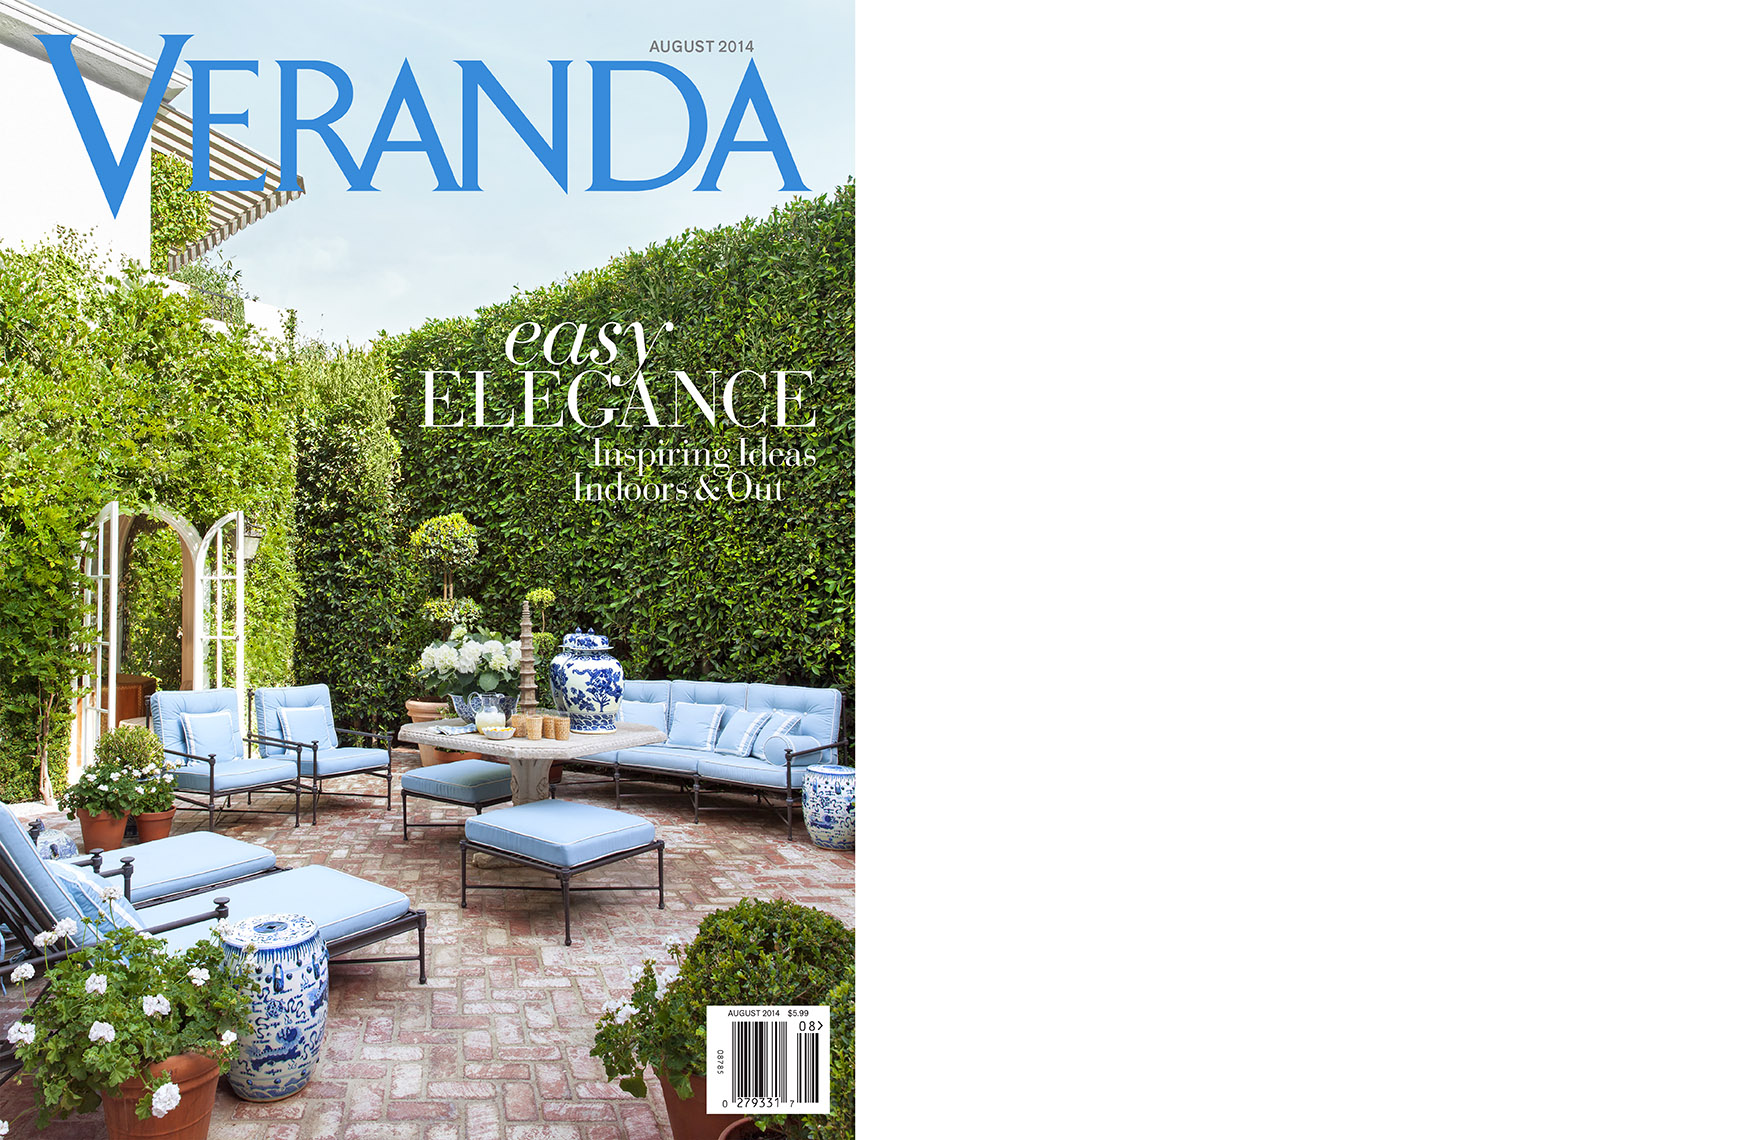 Veranda_Aug_2014_cover_White